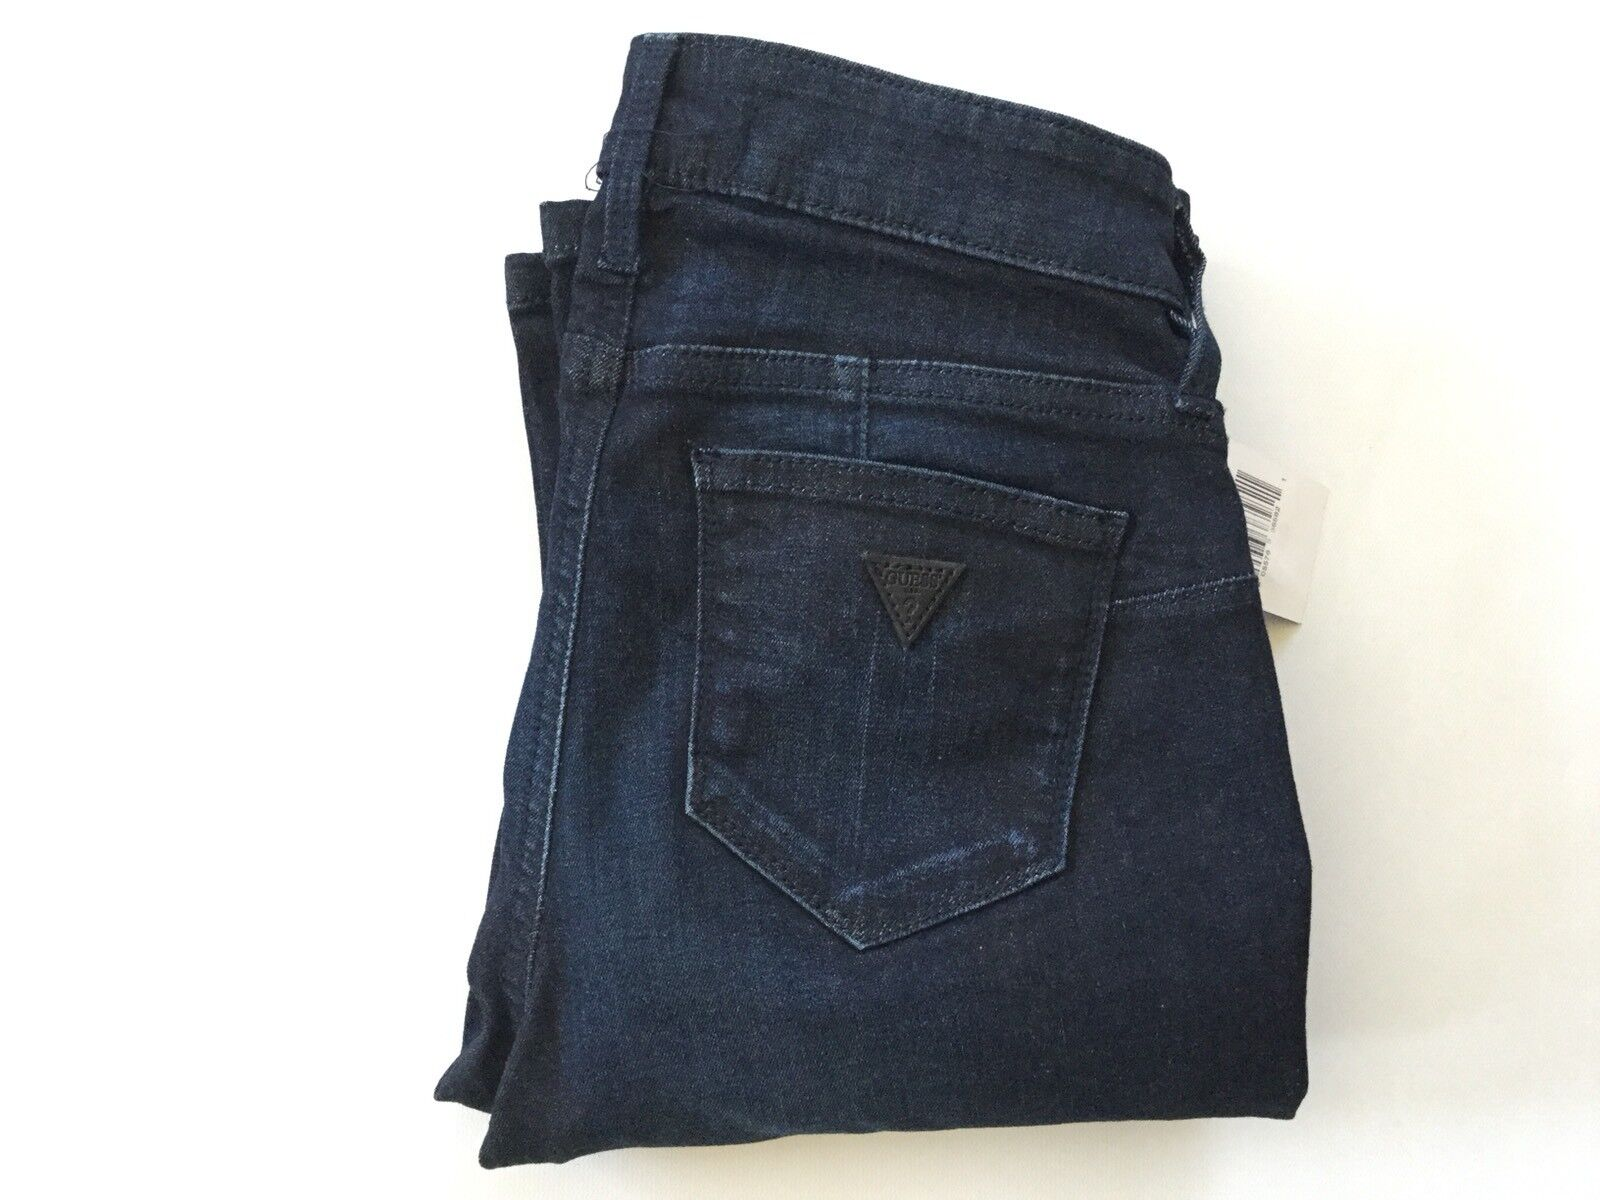 Guess Women's Curve X Boot Jeans Skinny Fit With Slim Boot Leg Size 30